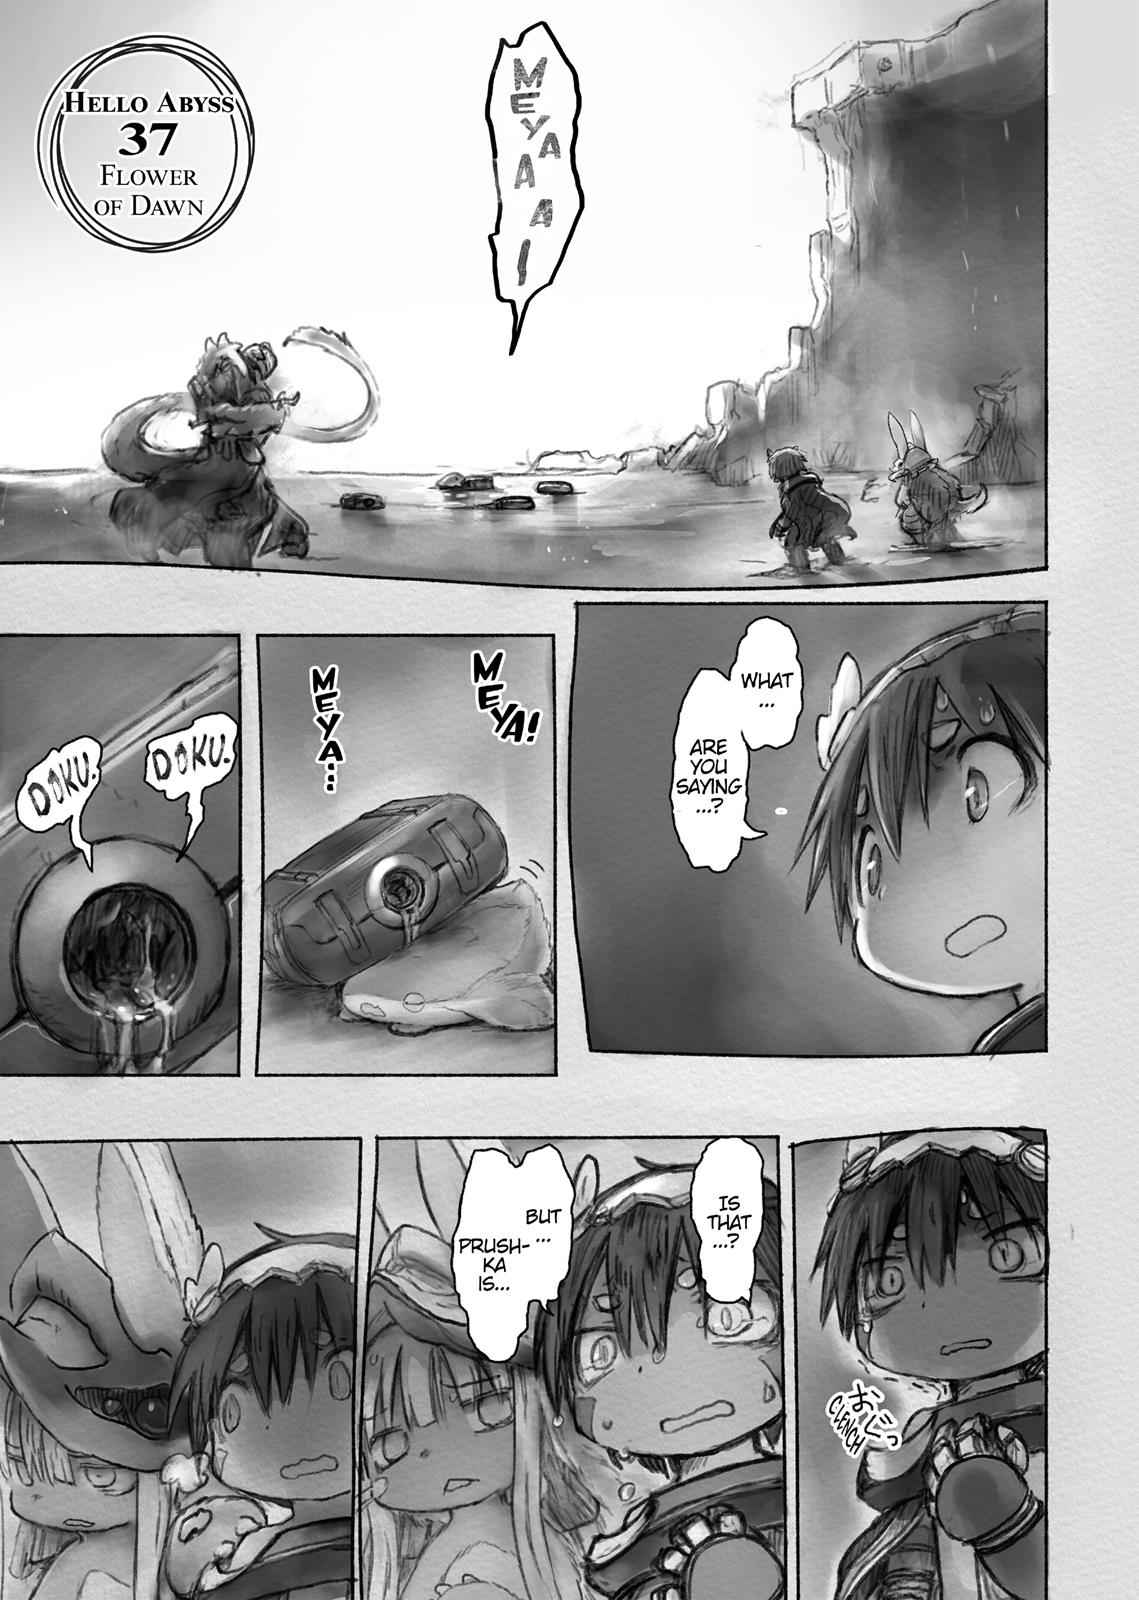 Made in Abyss Chapter 37 Page 1